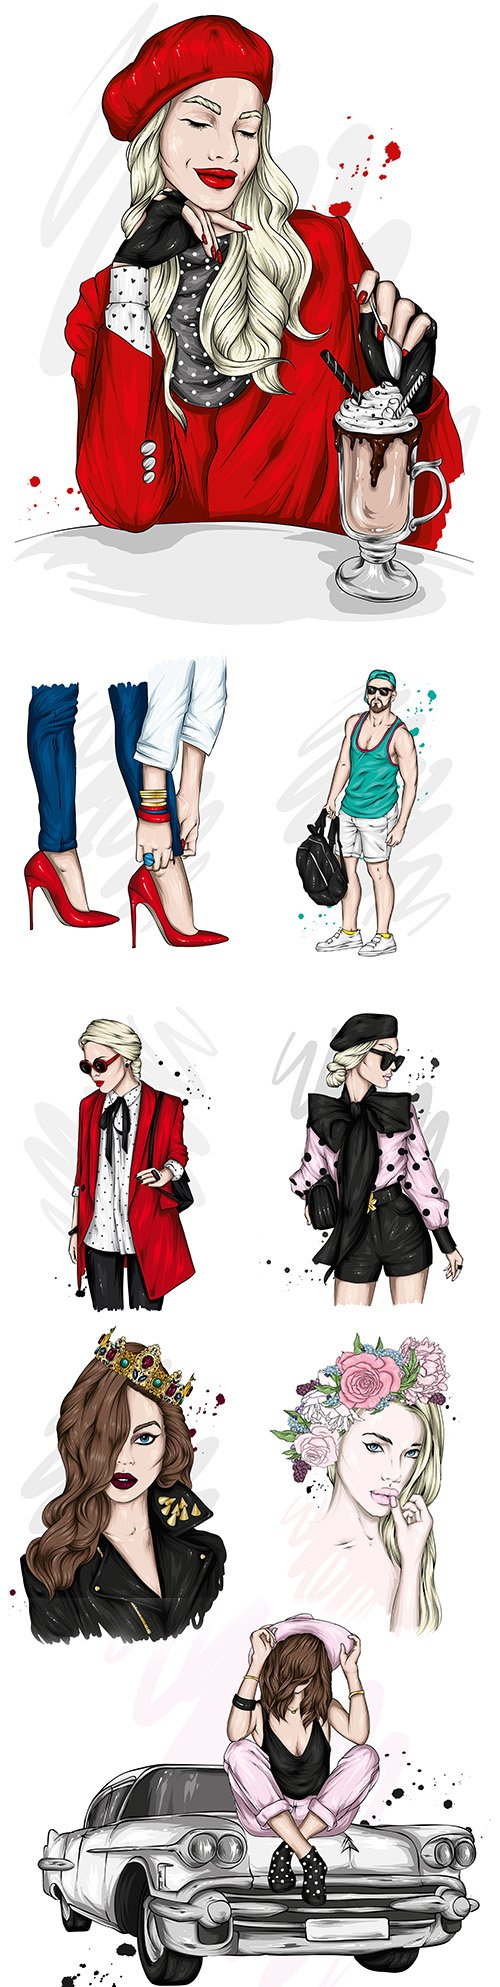 Beautiful girl and guy in stylish clothes with fashion accessories 4